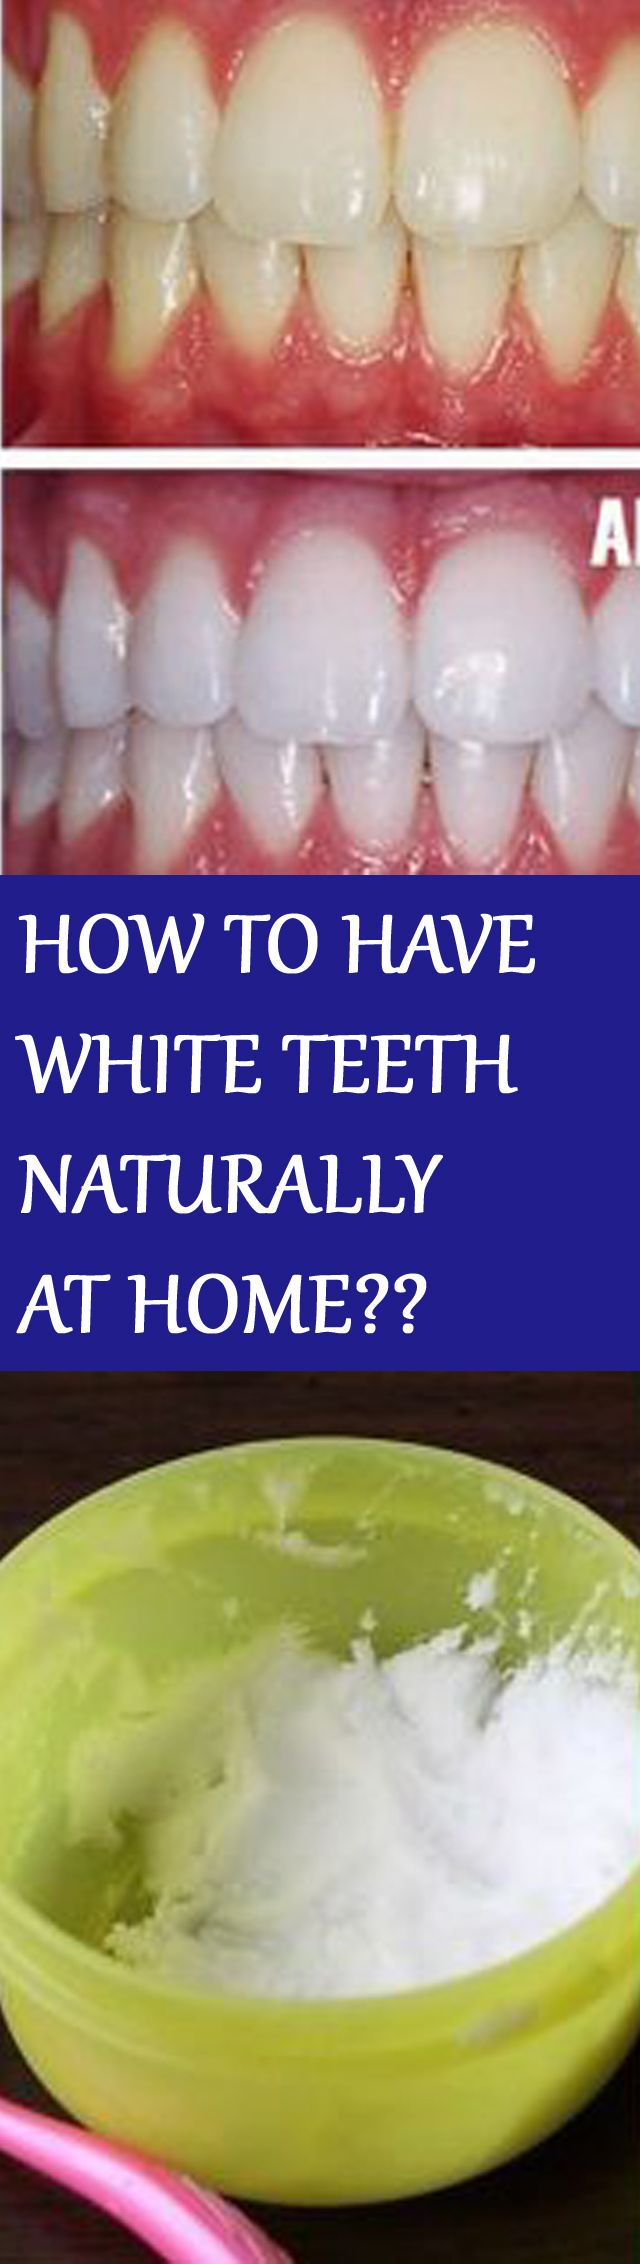 HOW TO HAVE WHITE TEETH NATURALLY AT HOME IN JUST 3 MINUTES ( WORKS 100%)! For instructions click the picture :D